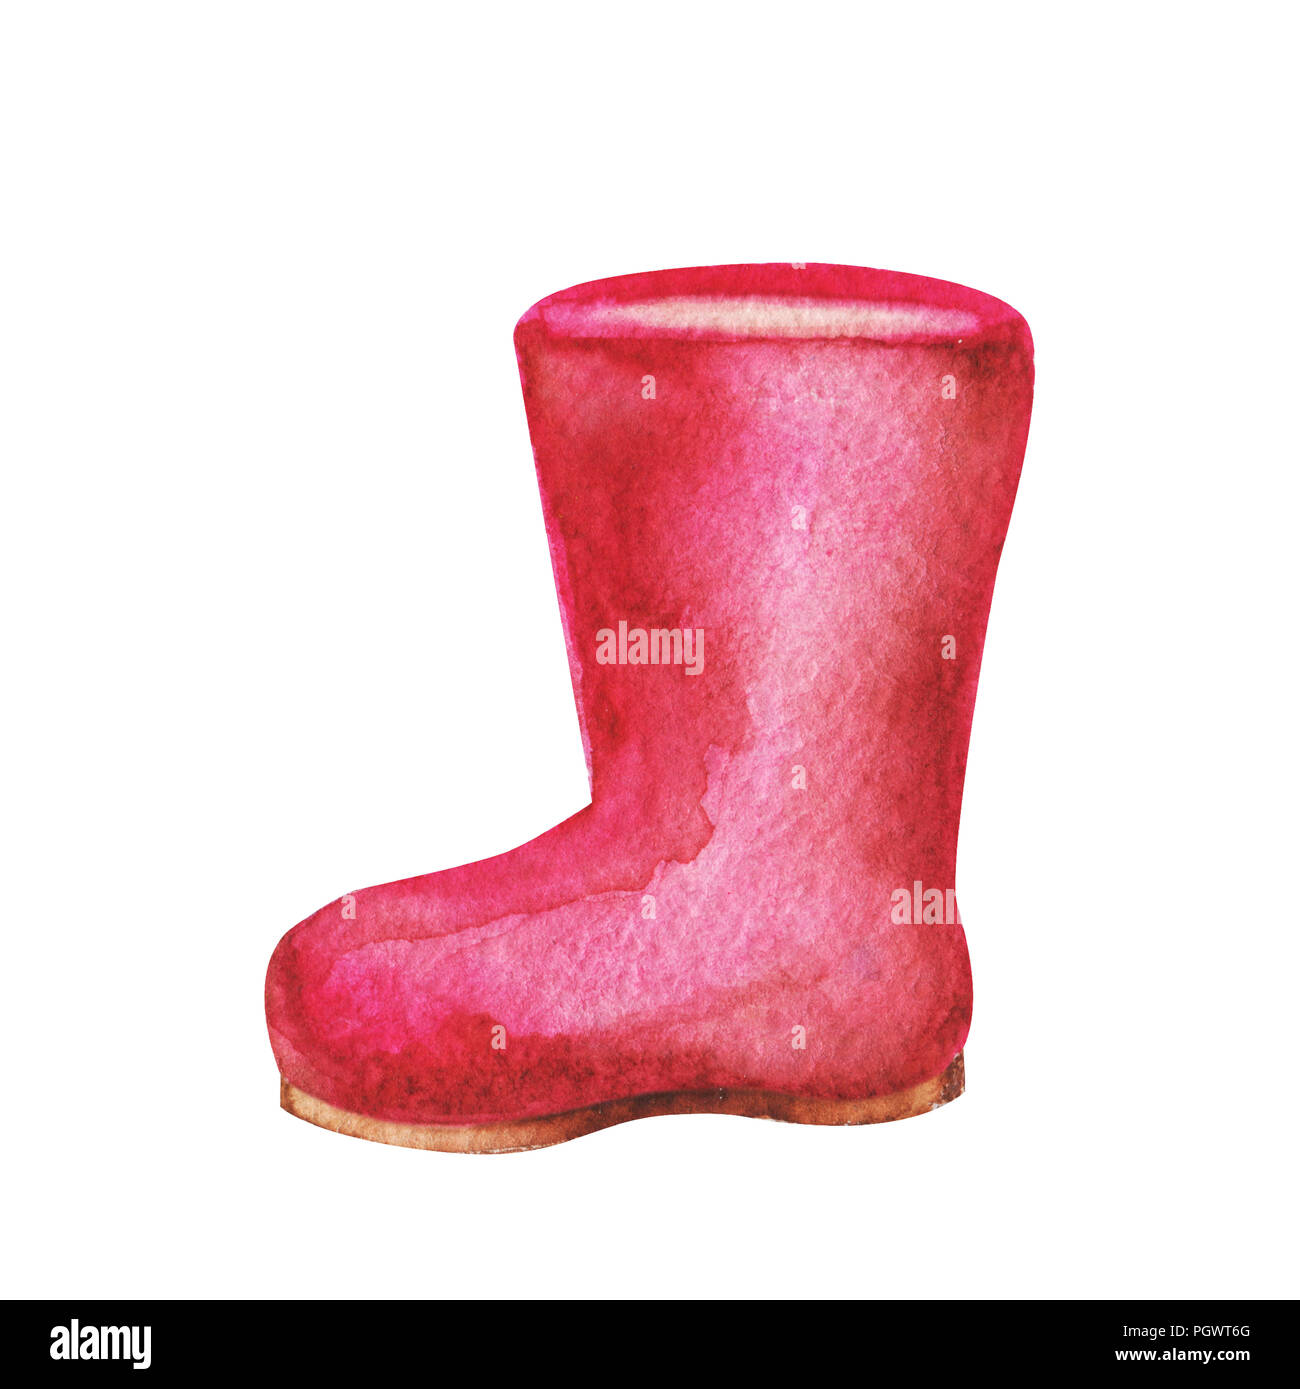 Hand drawn watercolor Illustration of red rubber boot isolated on white background. Painting for print and cards Stock Photo